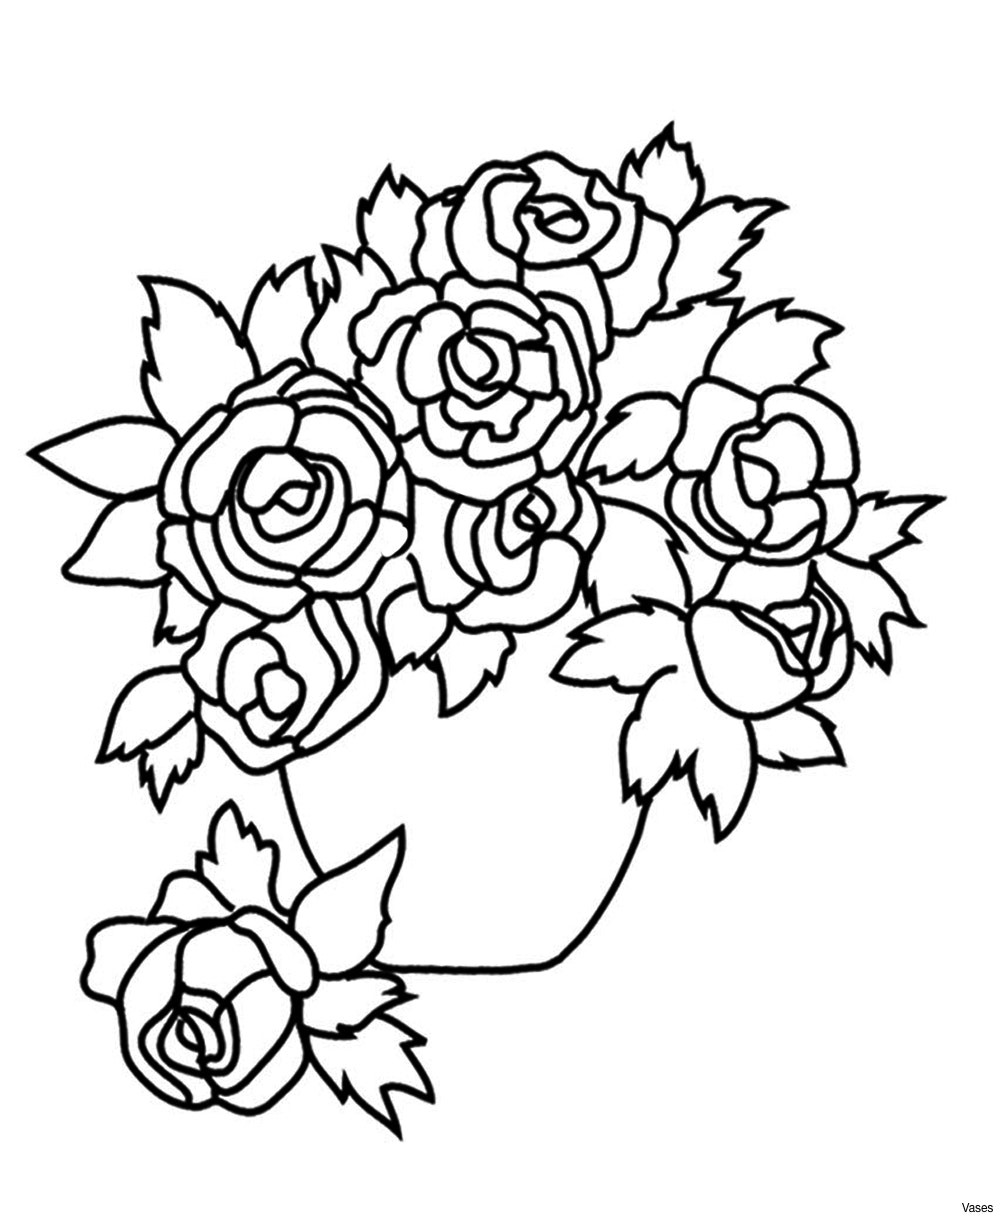 White Roses In Glass Vase Of Rose Flower Coloring Pages Fun Time with Regard to Rose Flower Coloring Pages Cool Vases Flower Vase Coloring Page Pages Flowers In A top